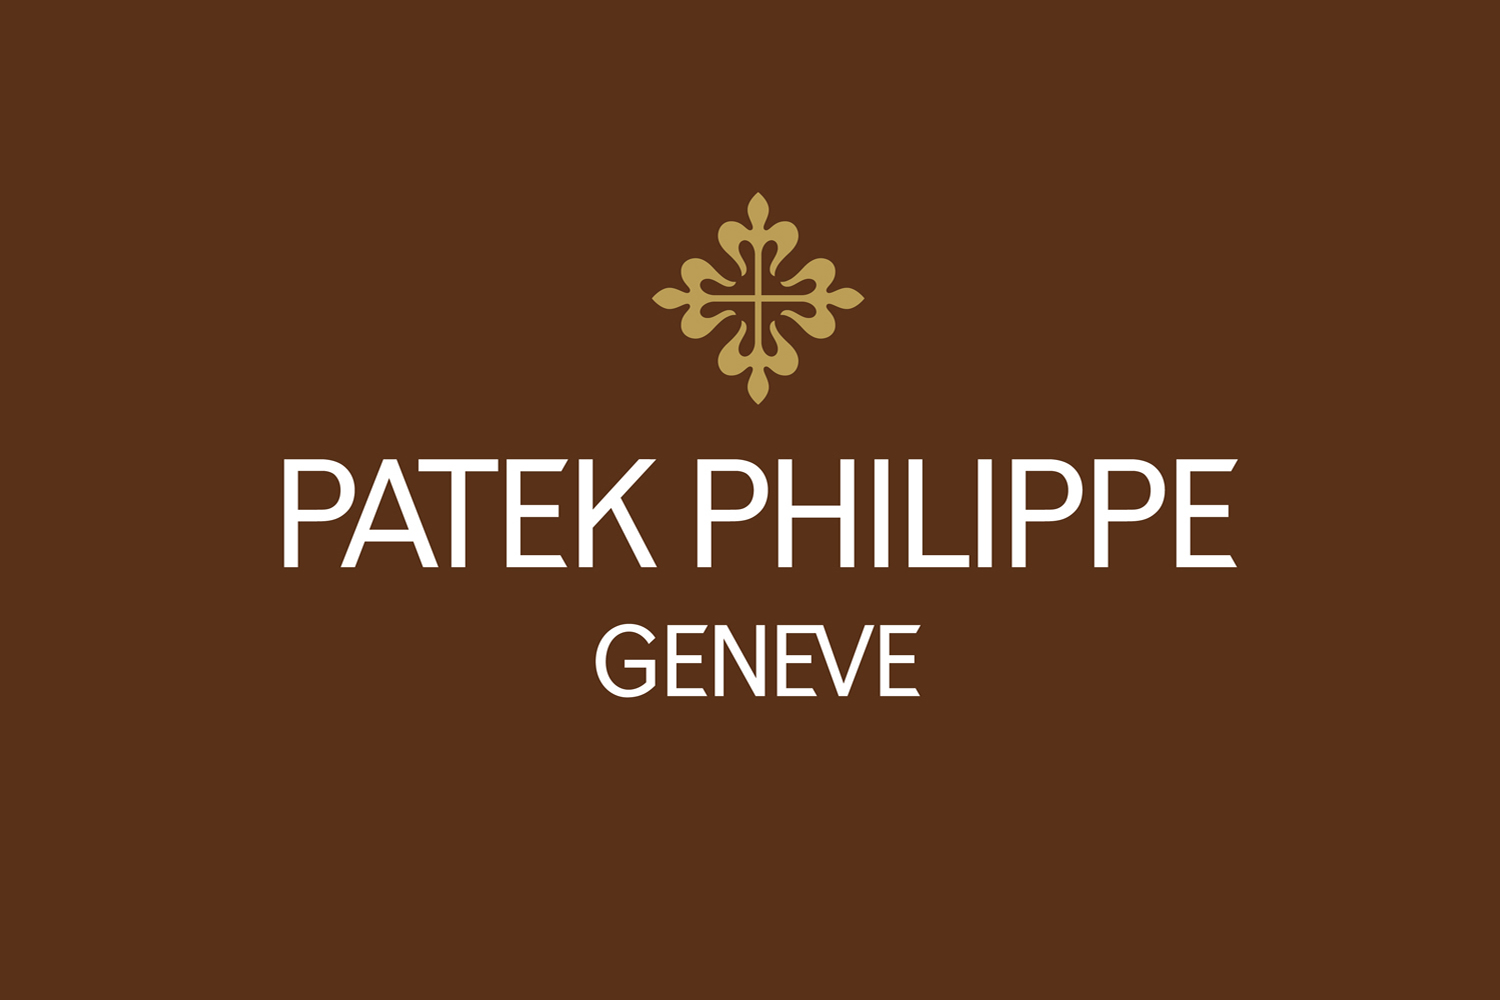 Patek Philippe by The Hour Glass